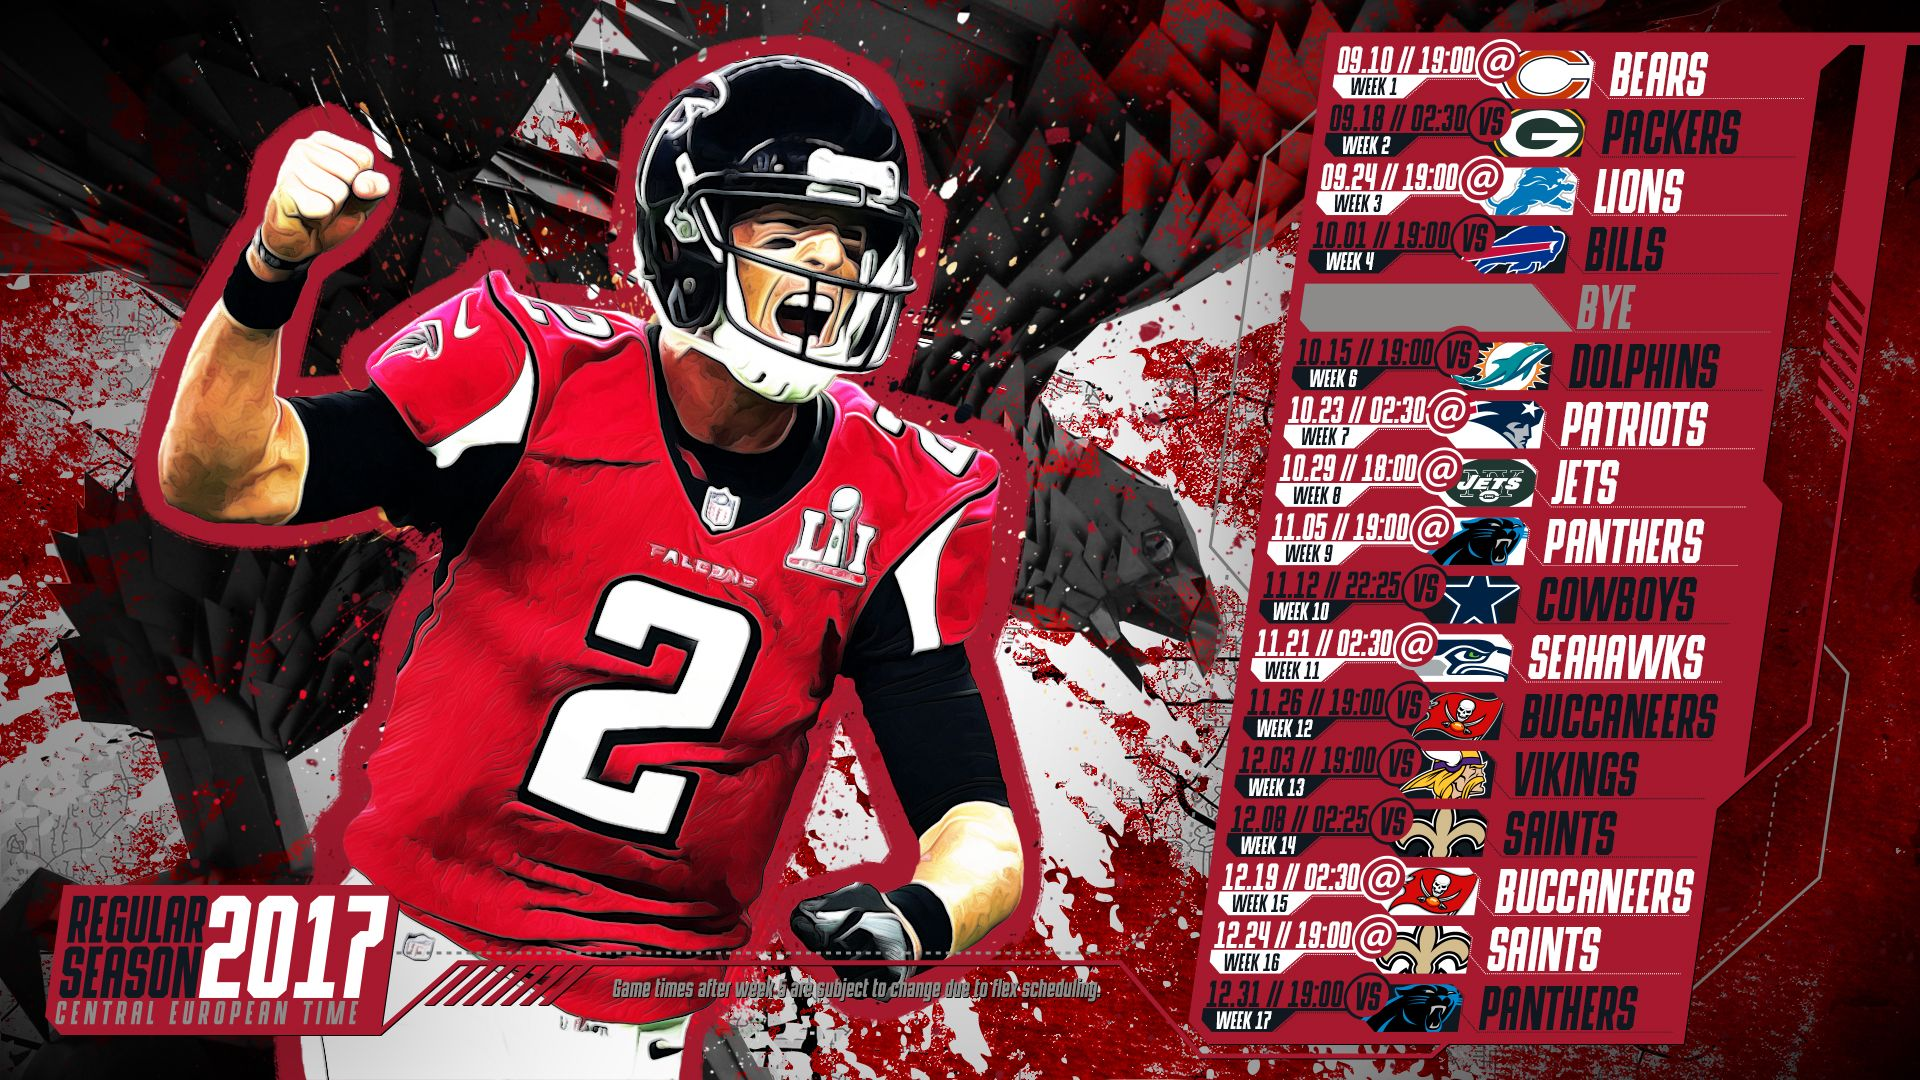 Schedule Wallpaper For The Atlanta Falcons Regular Season 2017 Central European Time Made By Tgersdiy